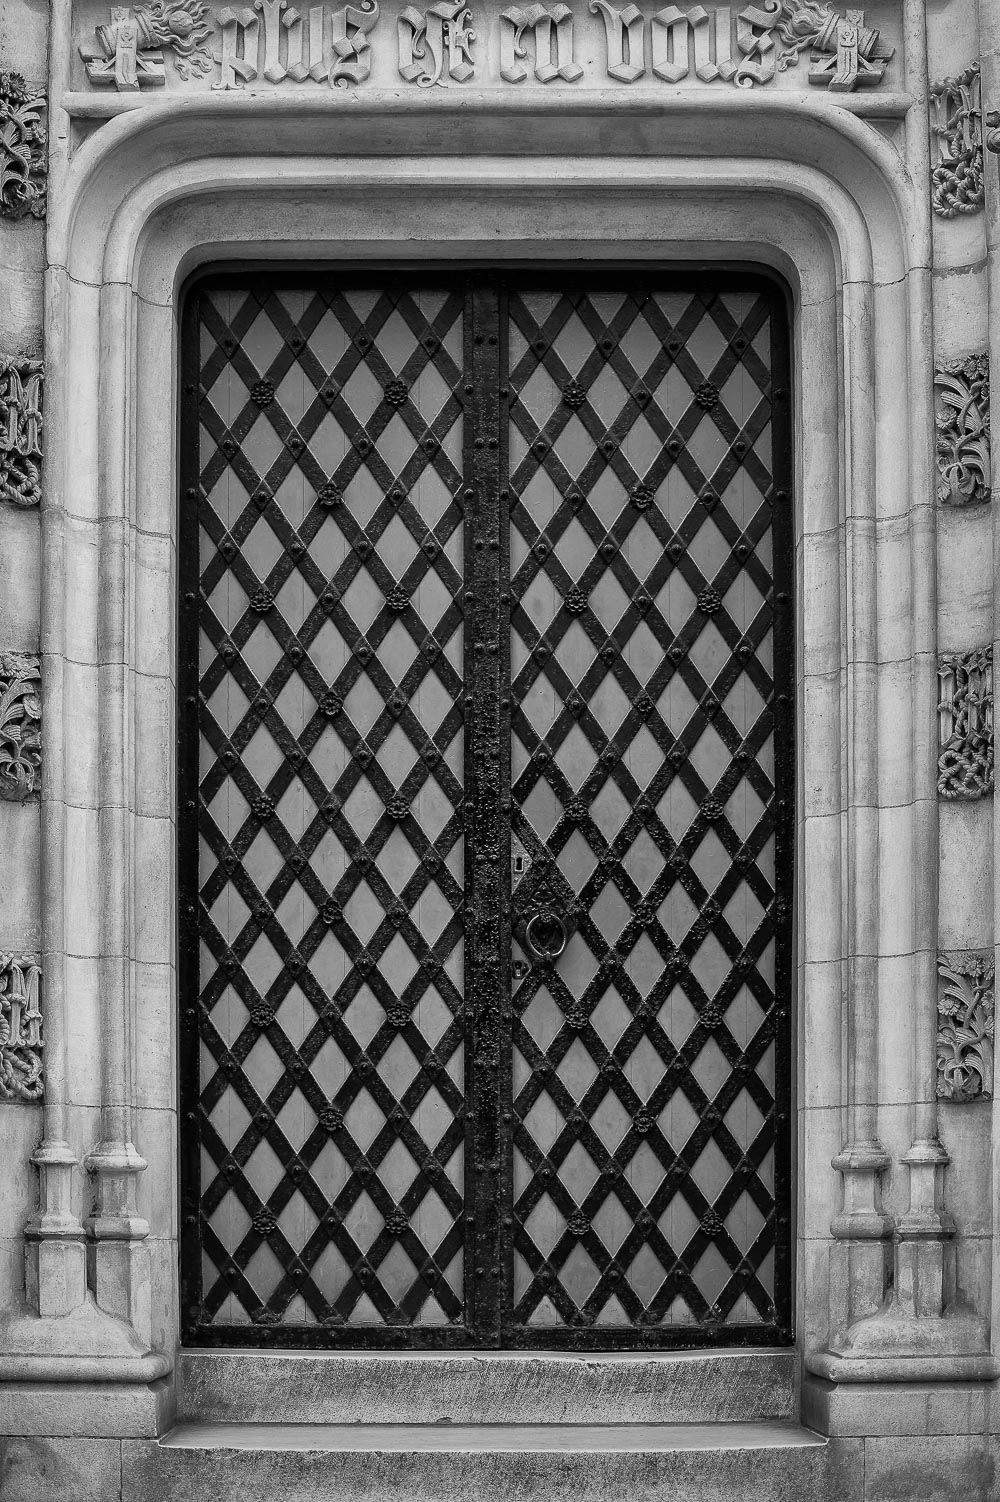 A  metal and wood lattice door  framed by stone speaks to the  rich history  of  Bruges  in  Belgium .